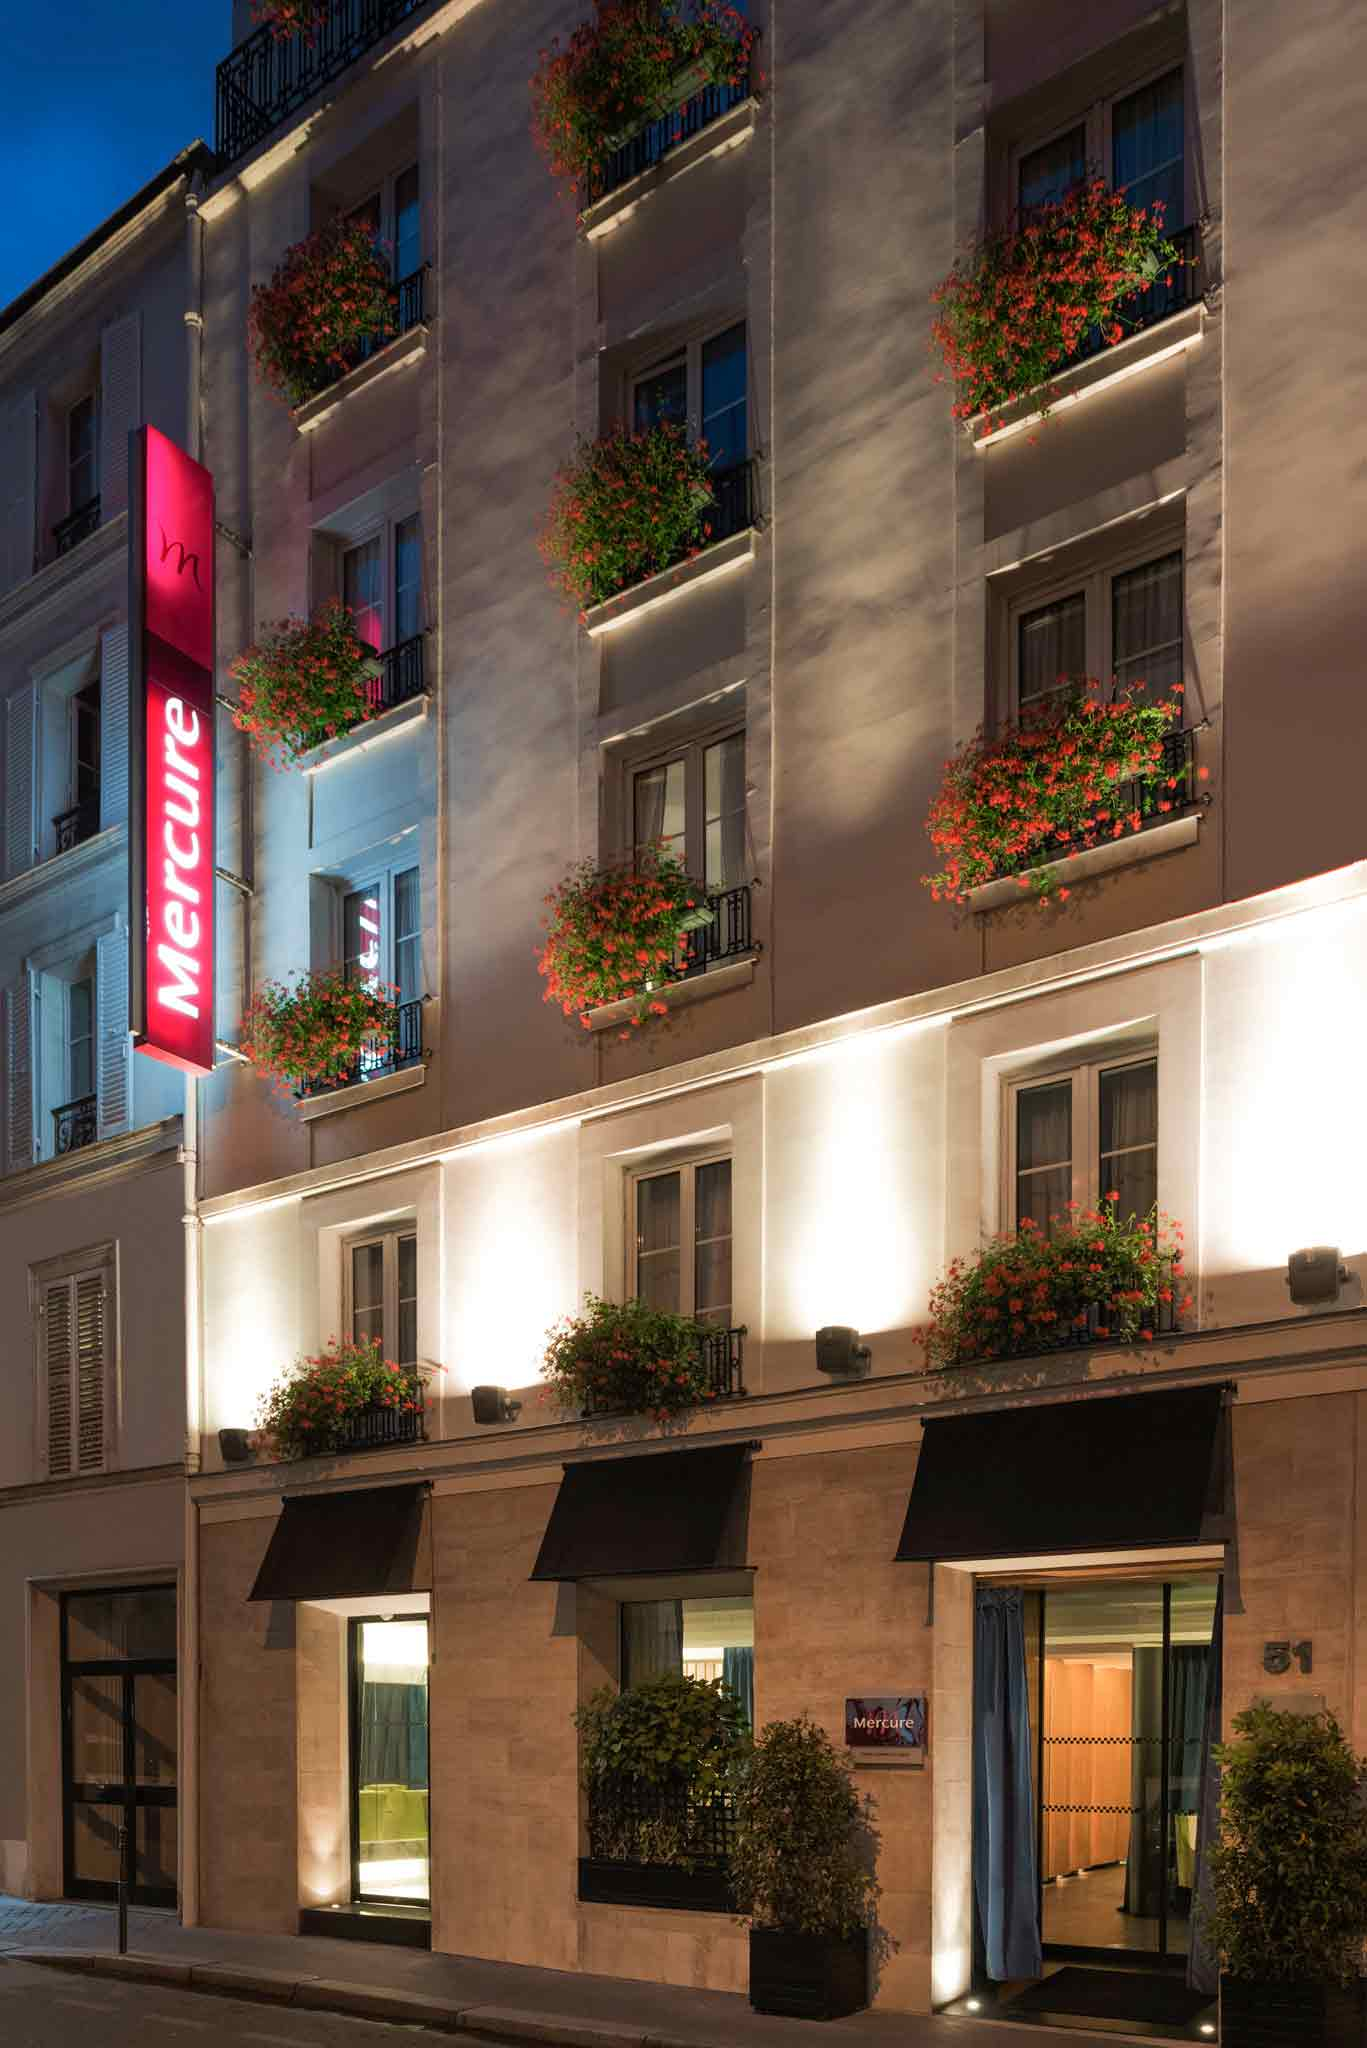 Mercure Paris Champs Elysees Außenansicht